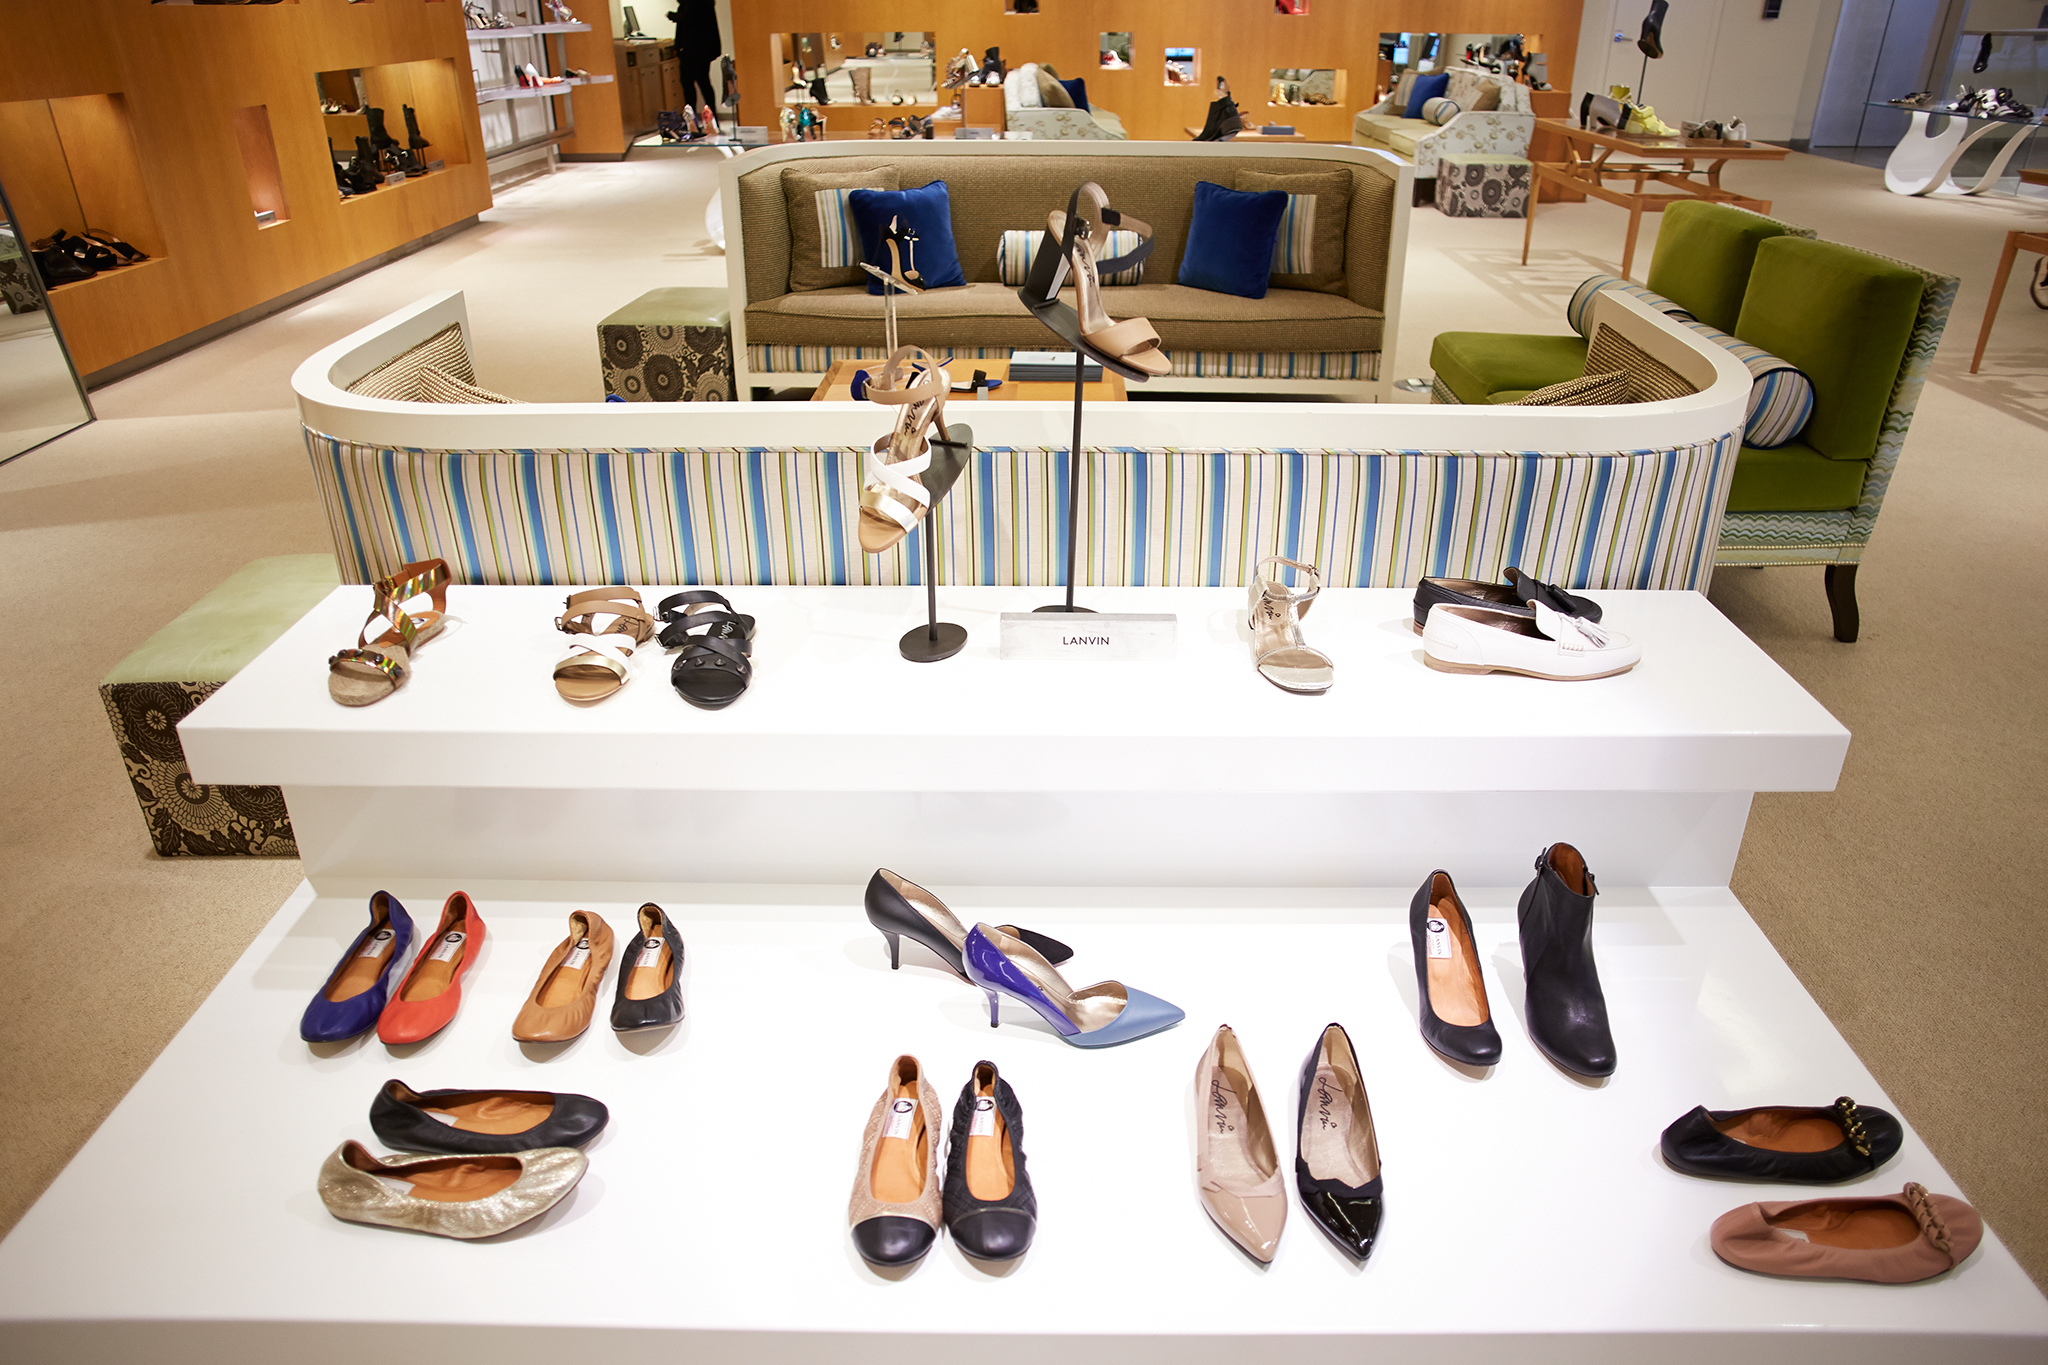 Contemporary furniture stores in chicago il - The Best Shoe Shops In Chicago